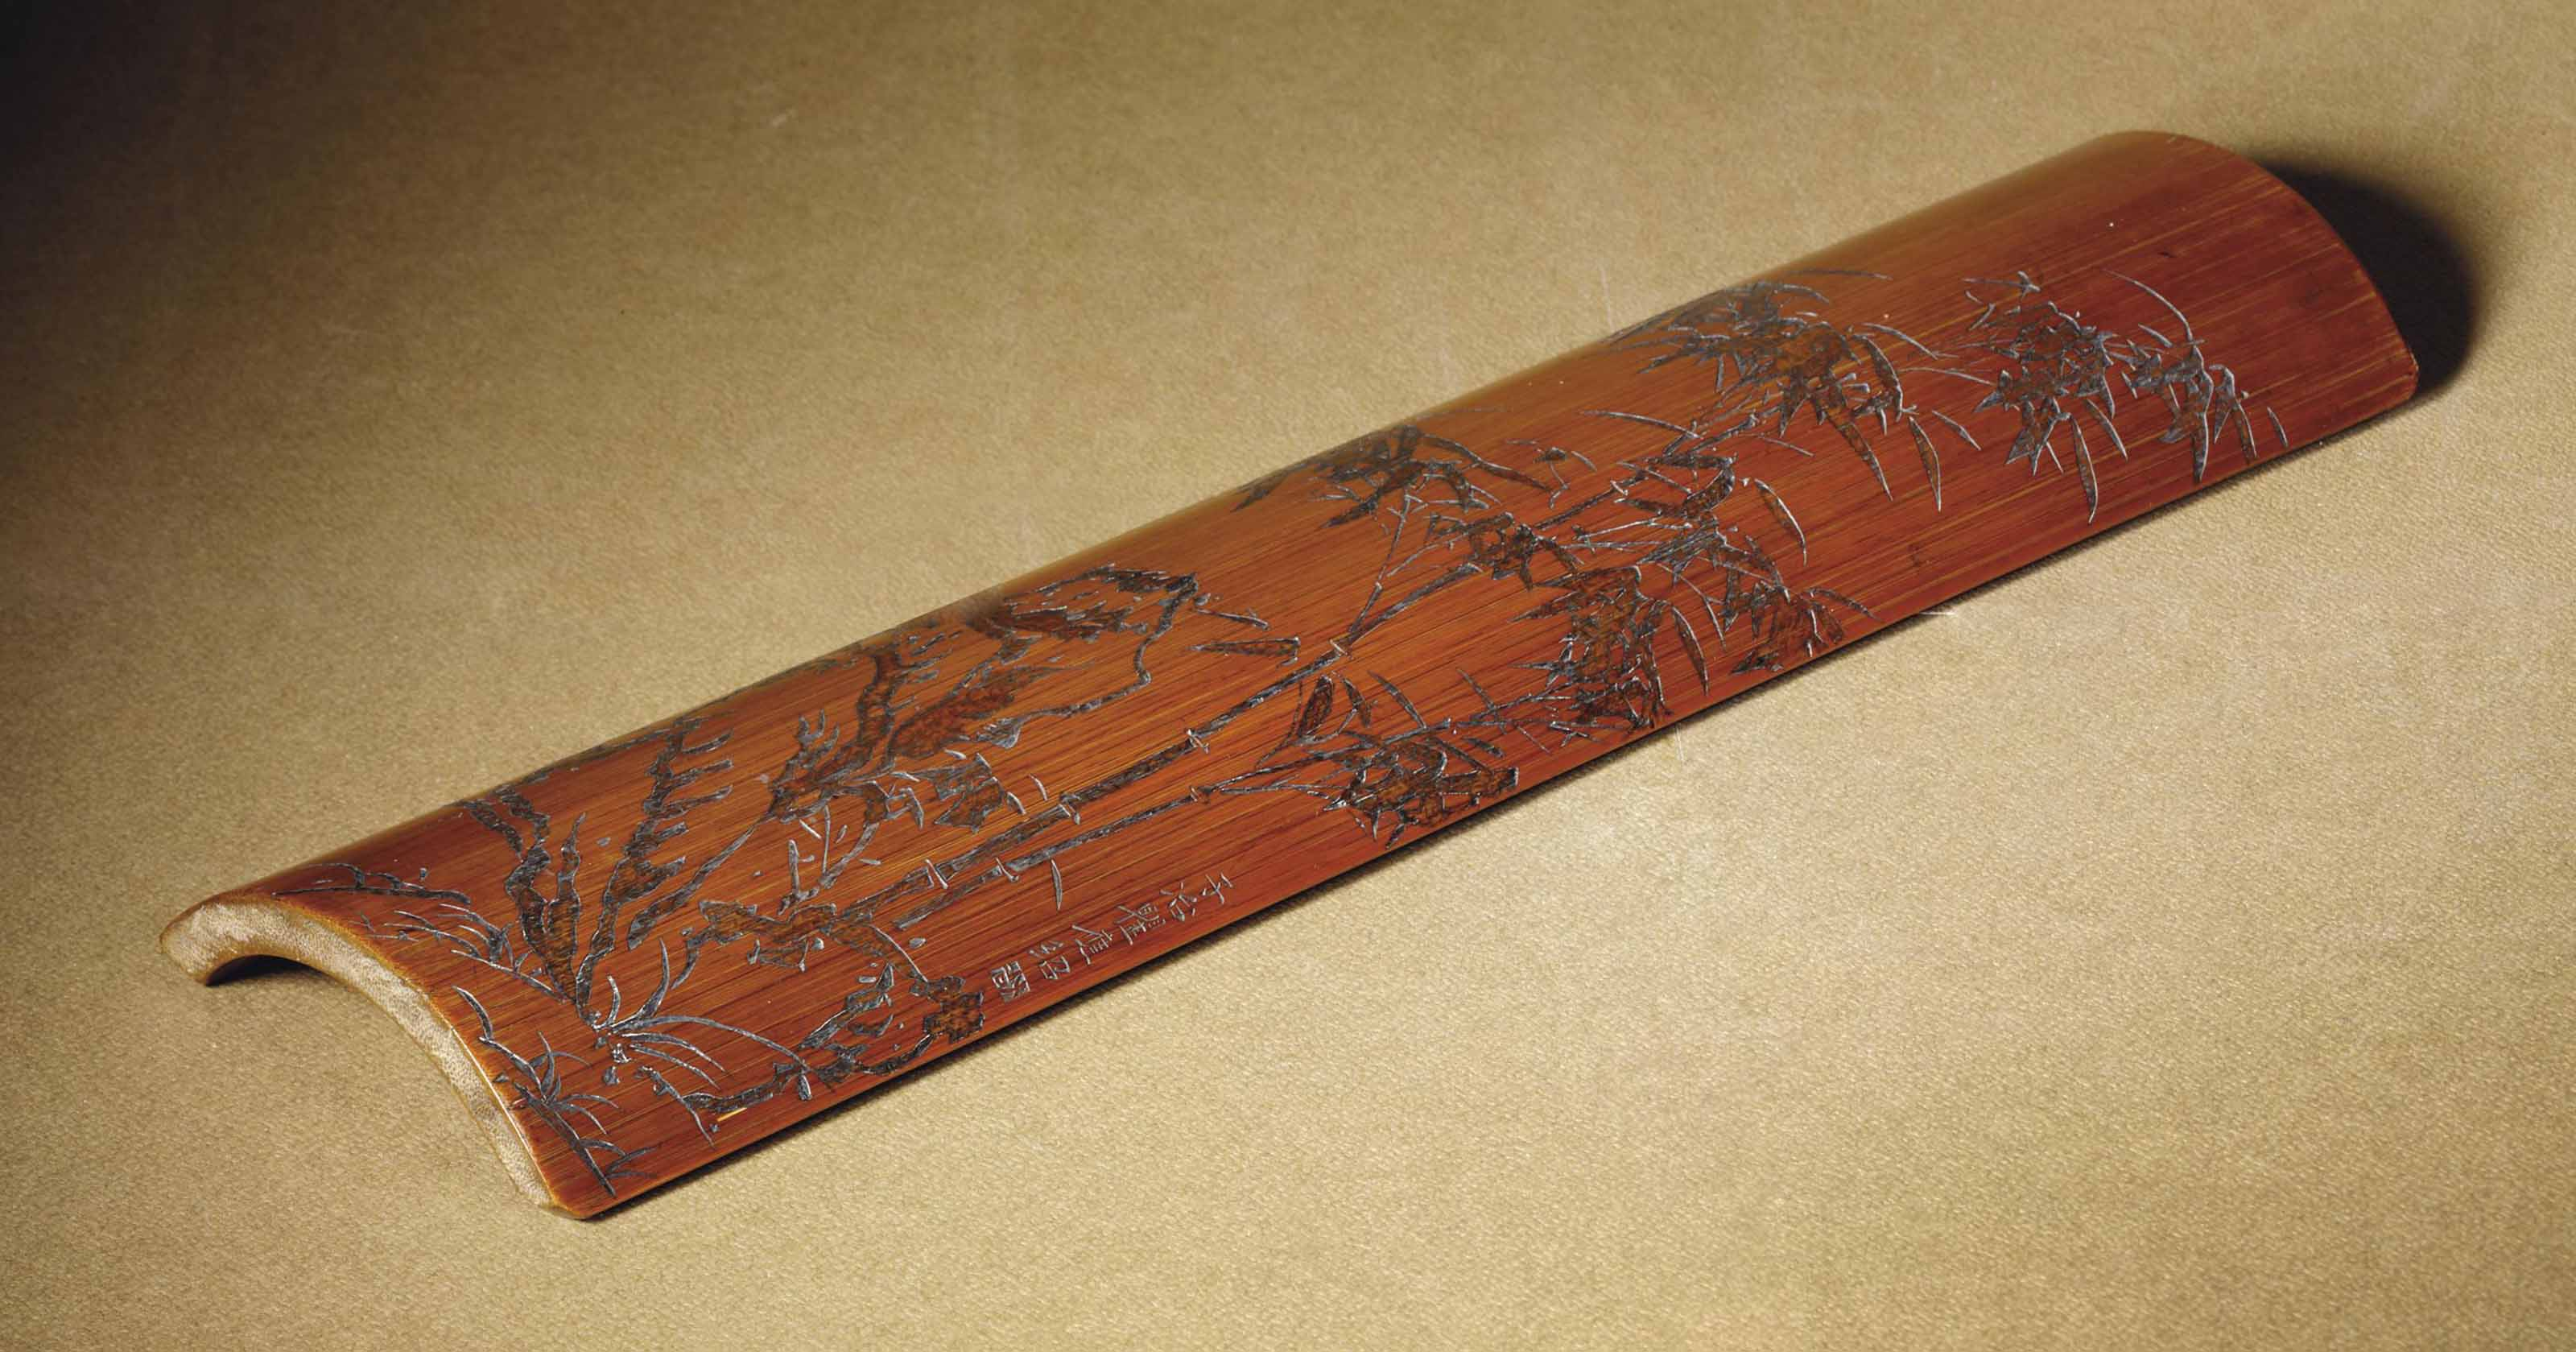 A LARGE CARVED BAMBOO WRIST RE